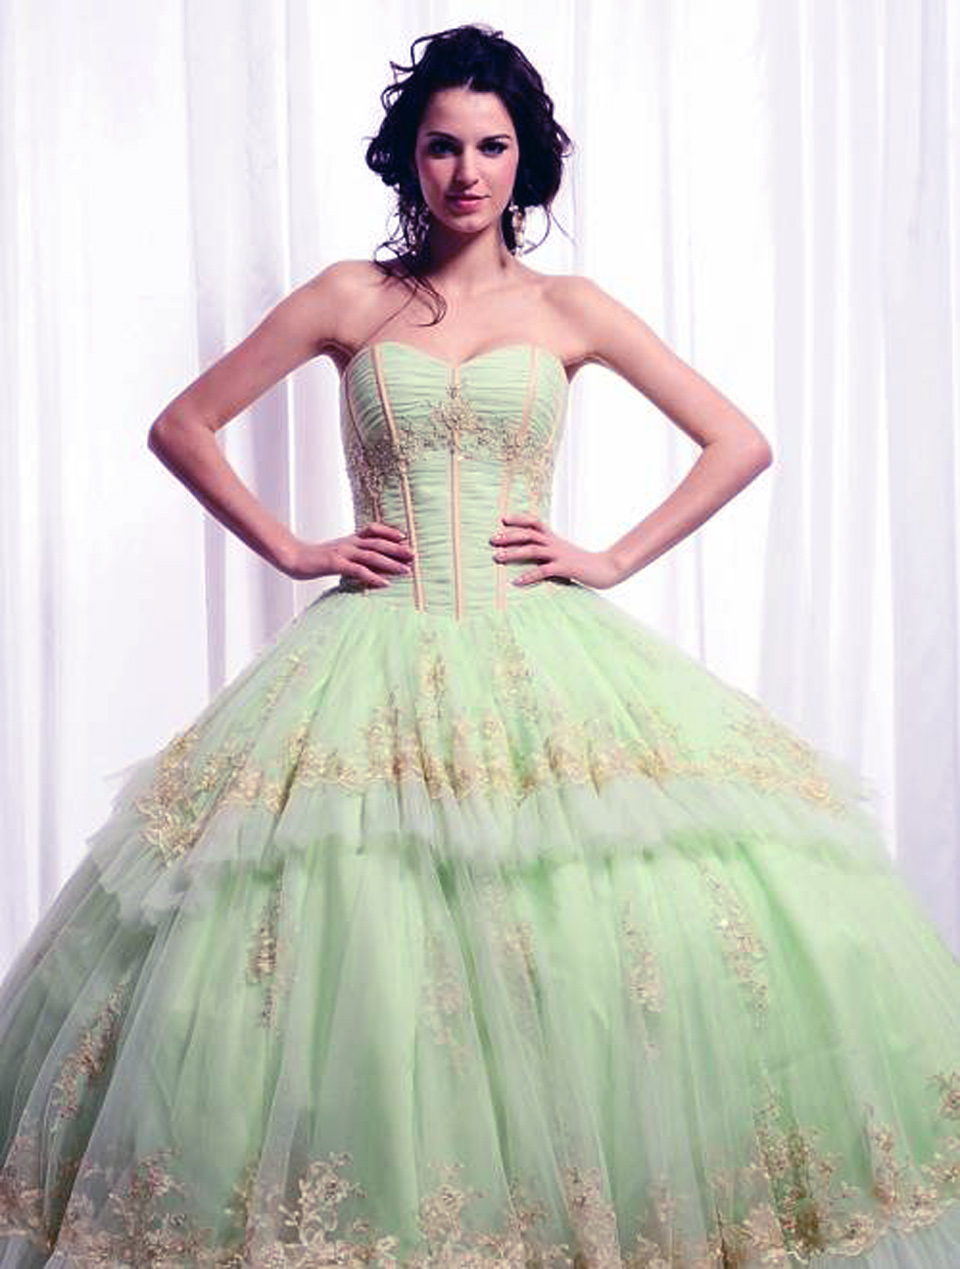 Big Puffy Prom Dresses Green - Inofashionstyle.com